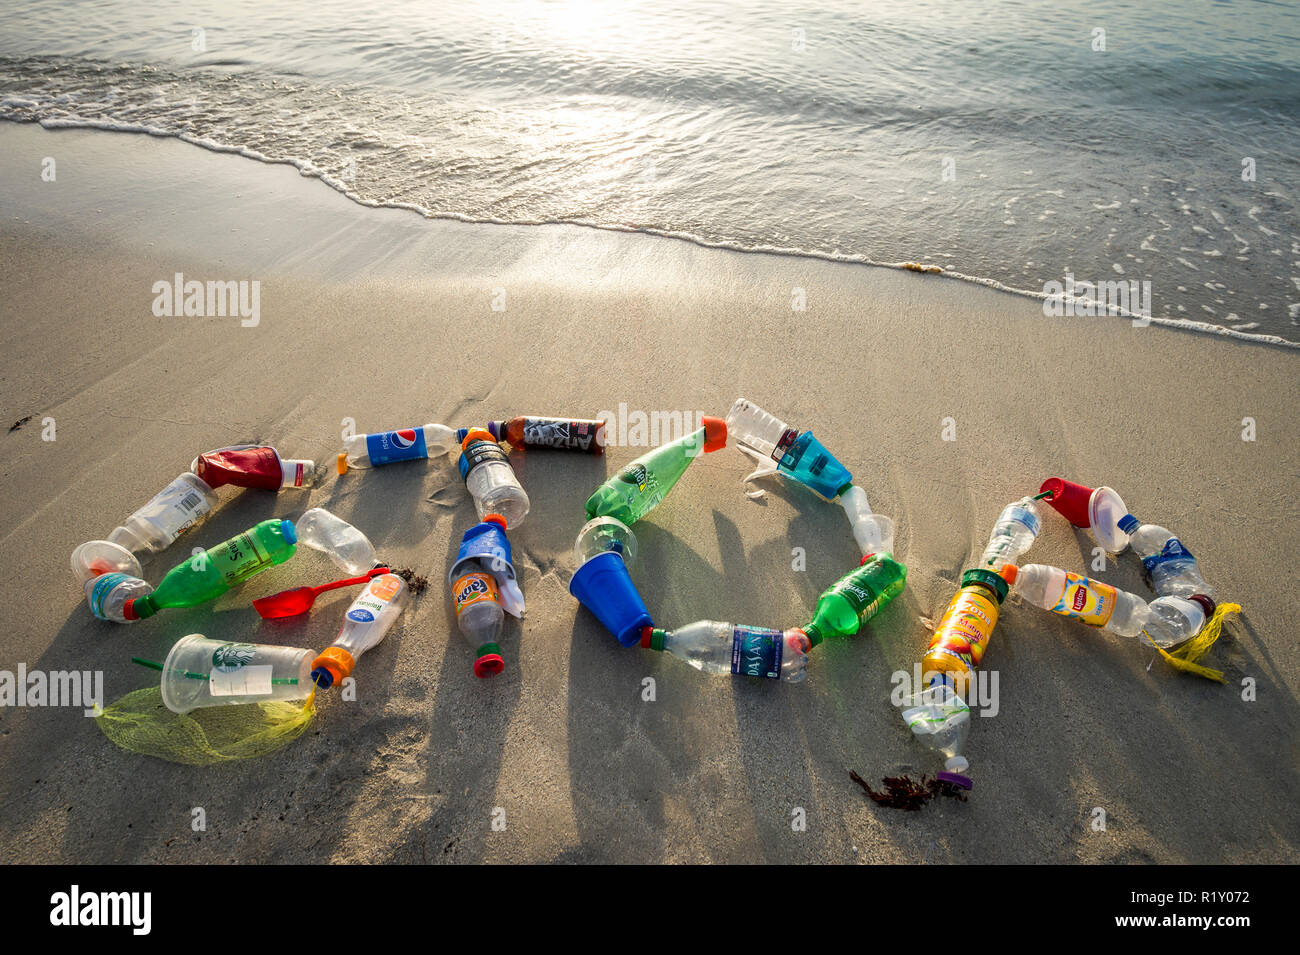 MIAMI - CIRCA AUGUST, 2018: Ocean plastic pollution awareness message spelling out STOP made from consumer drink bottles found on the beach Stock Photo